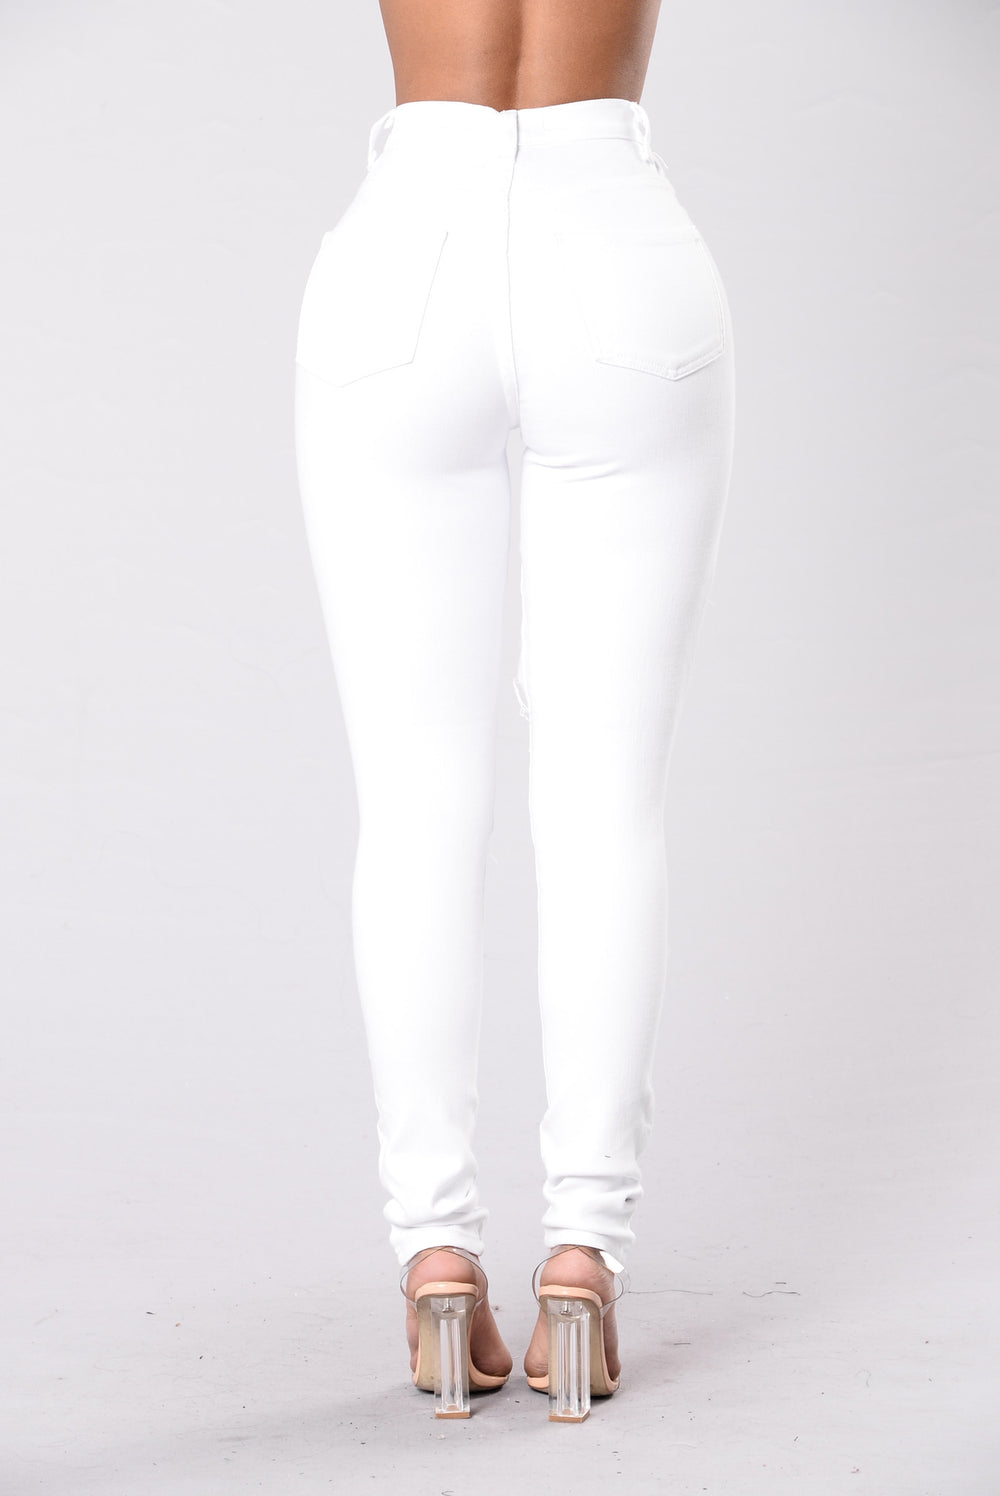 Fade Away Jeans - White